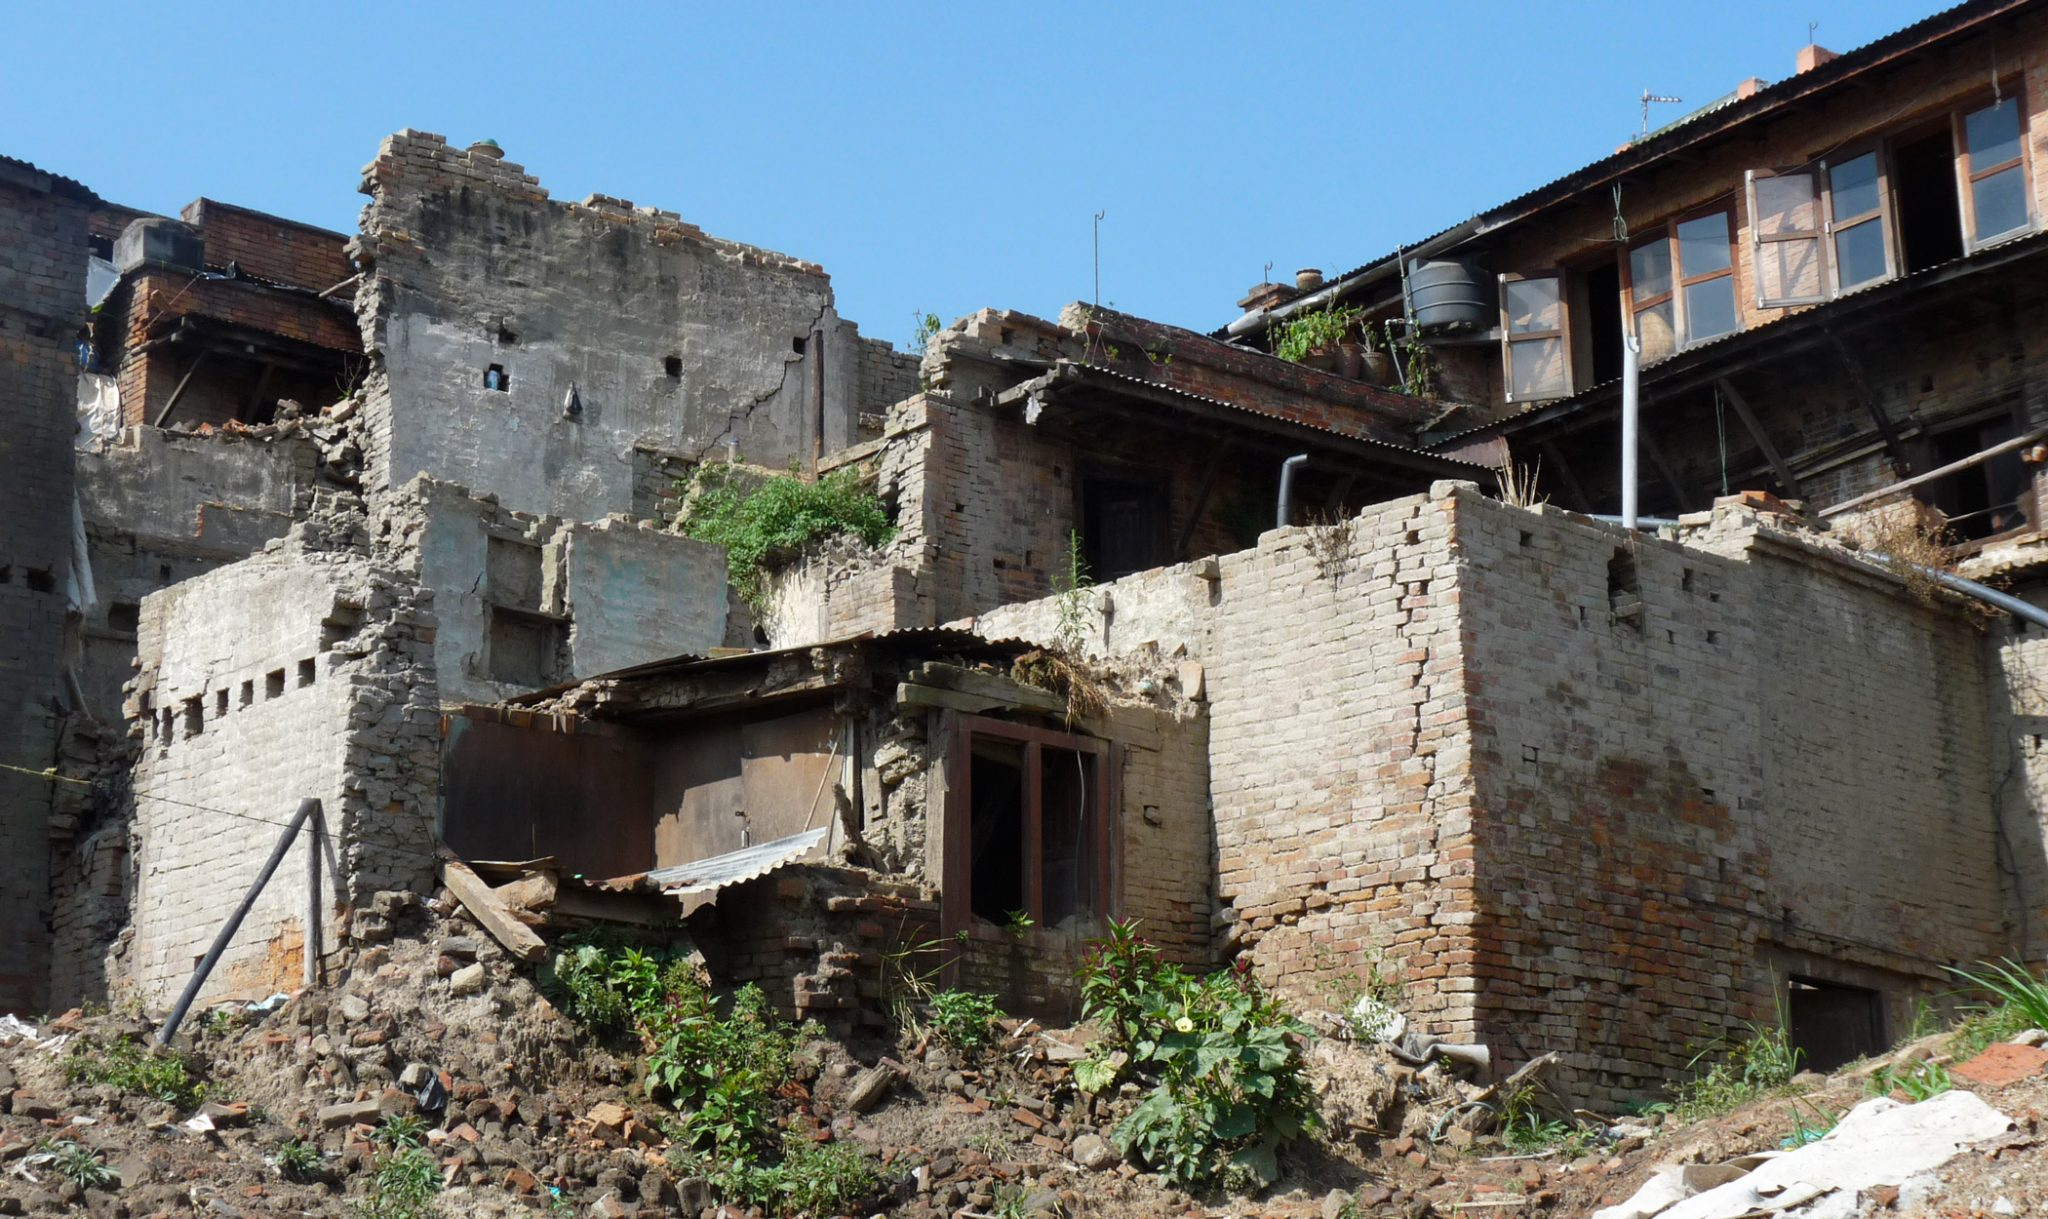 Ruins of people's homes